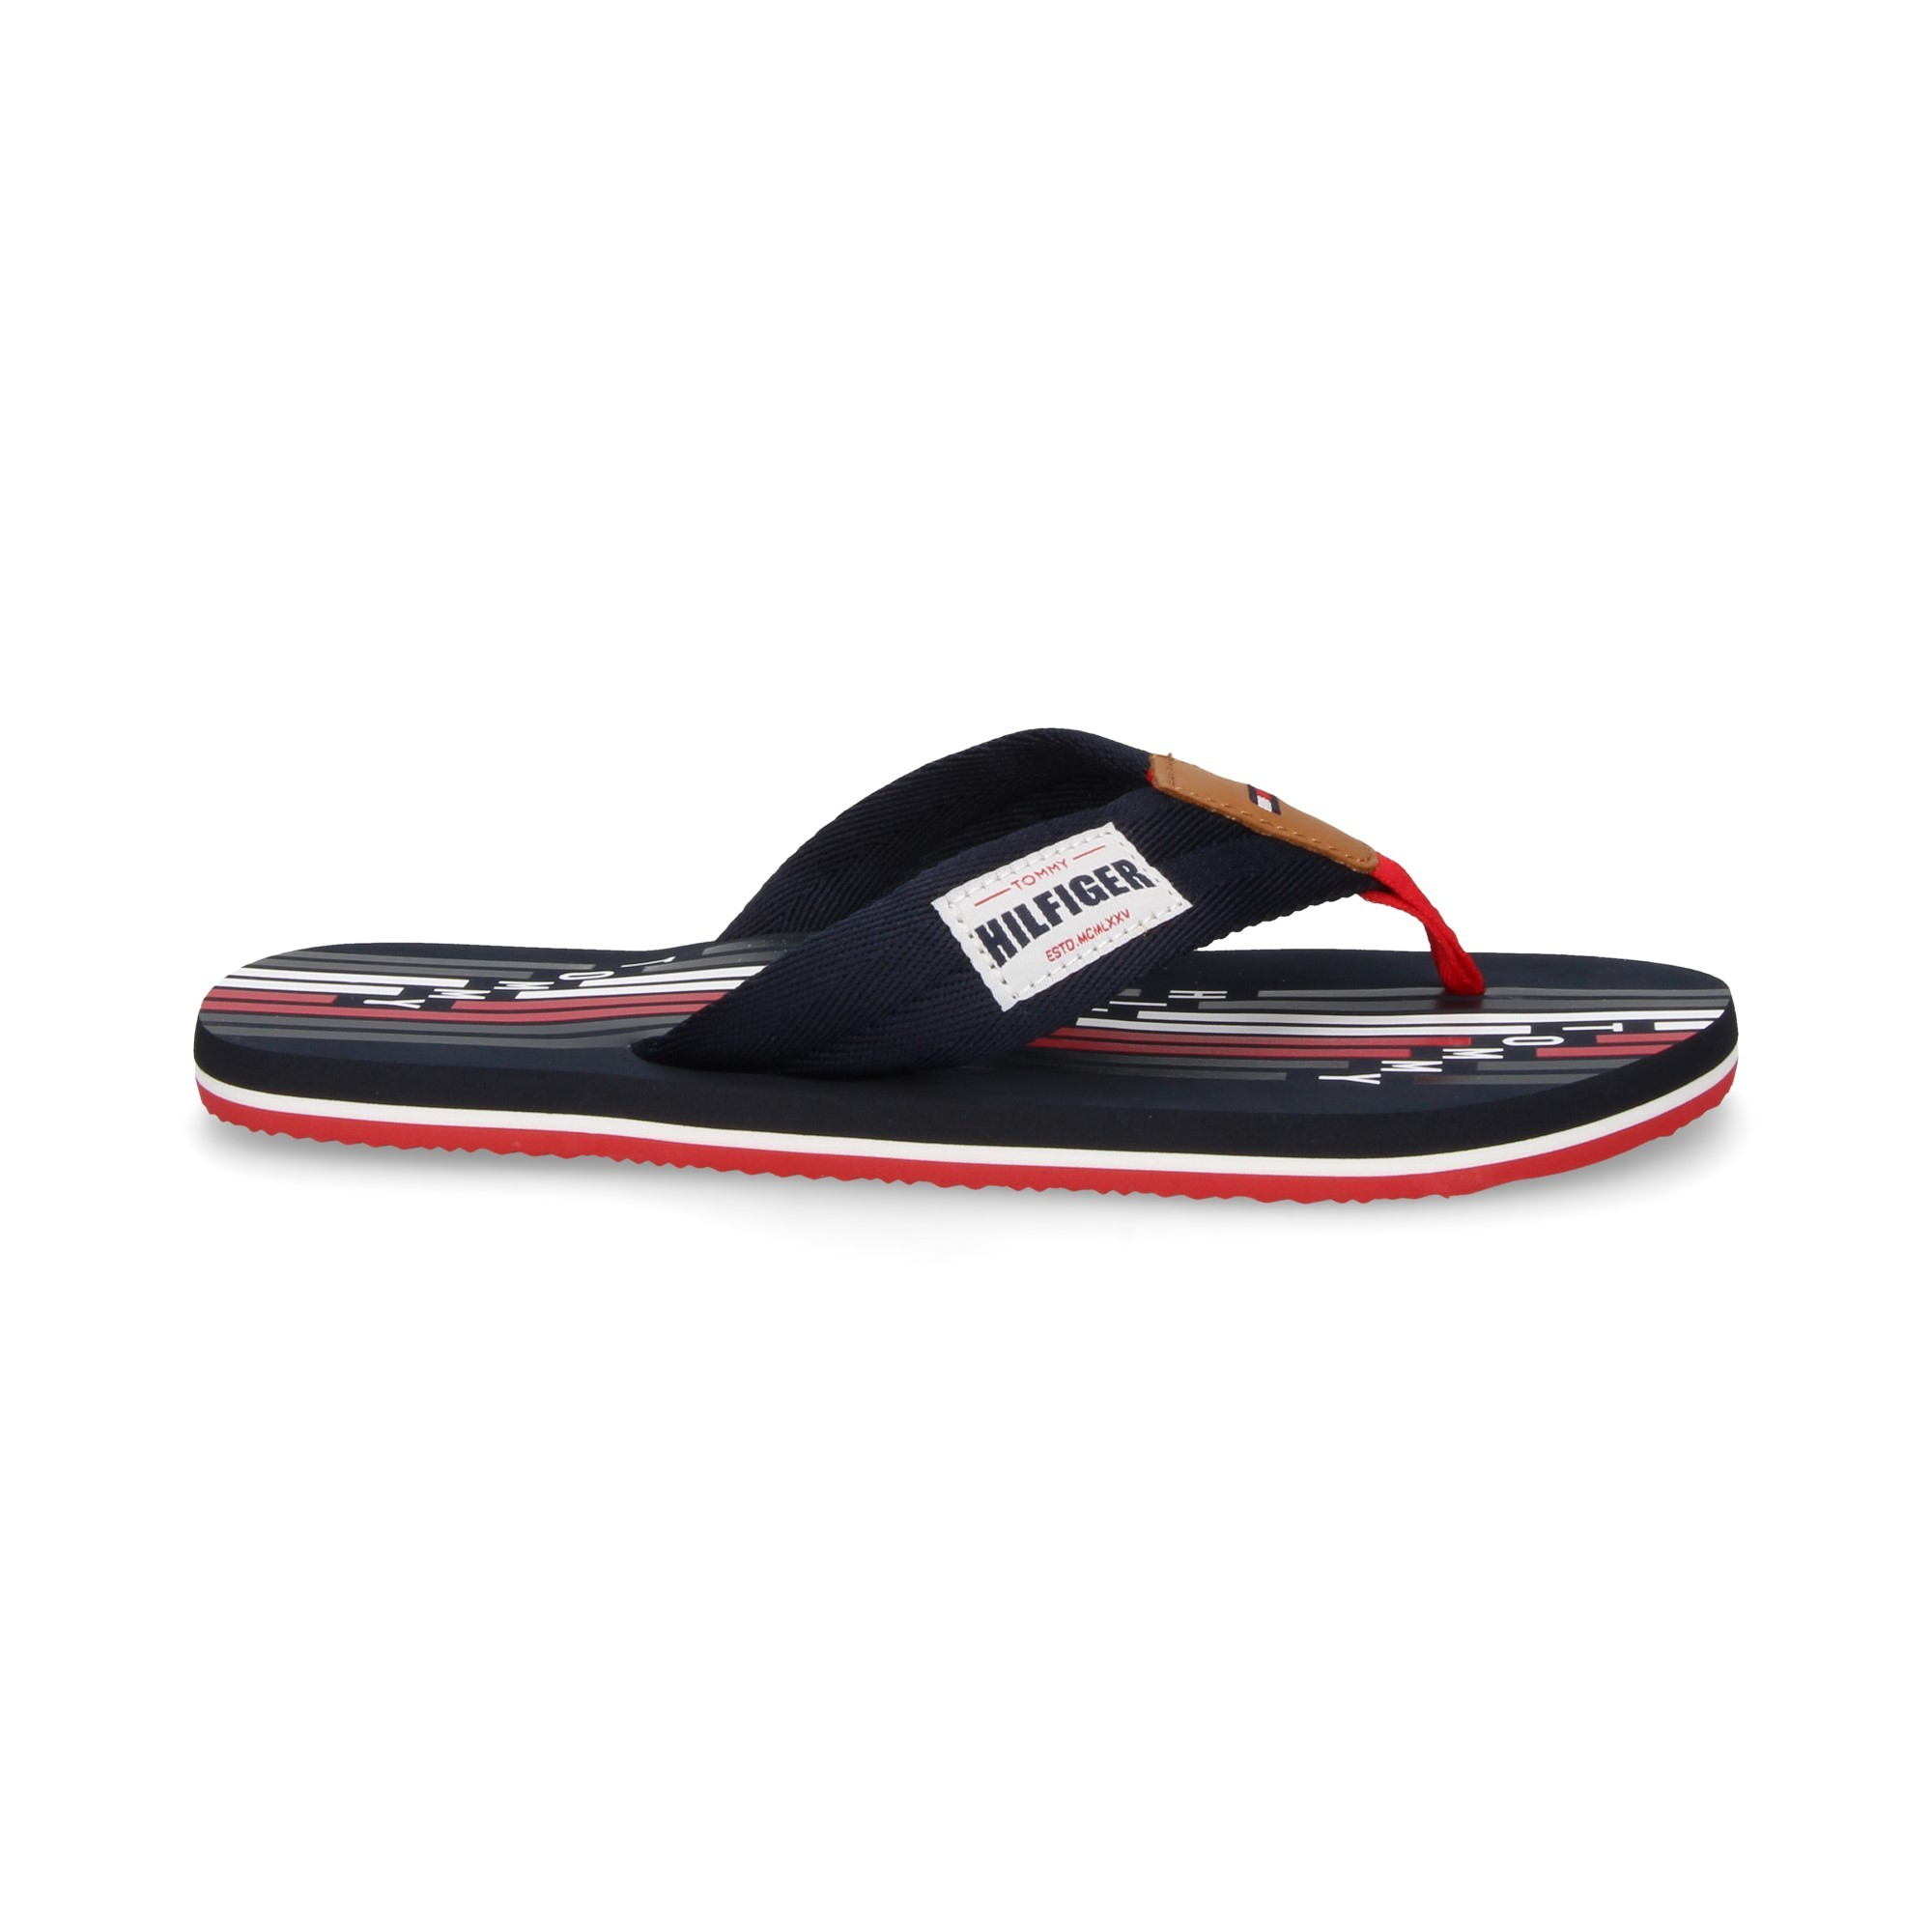 2f968864bfed4 TOMMY HILFIGER Men s Flip Flops FM1609 403 MIDNIGHT